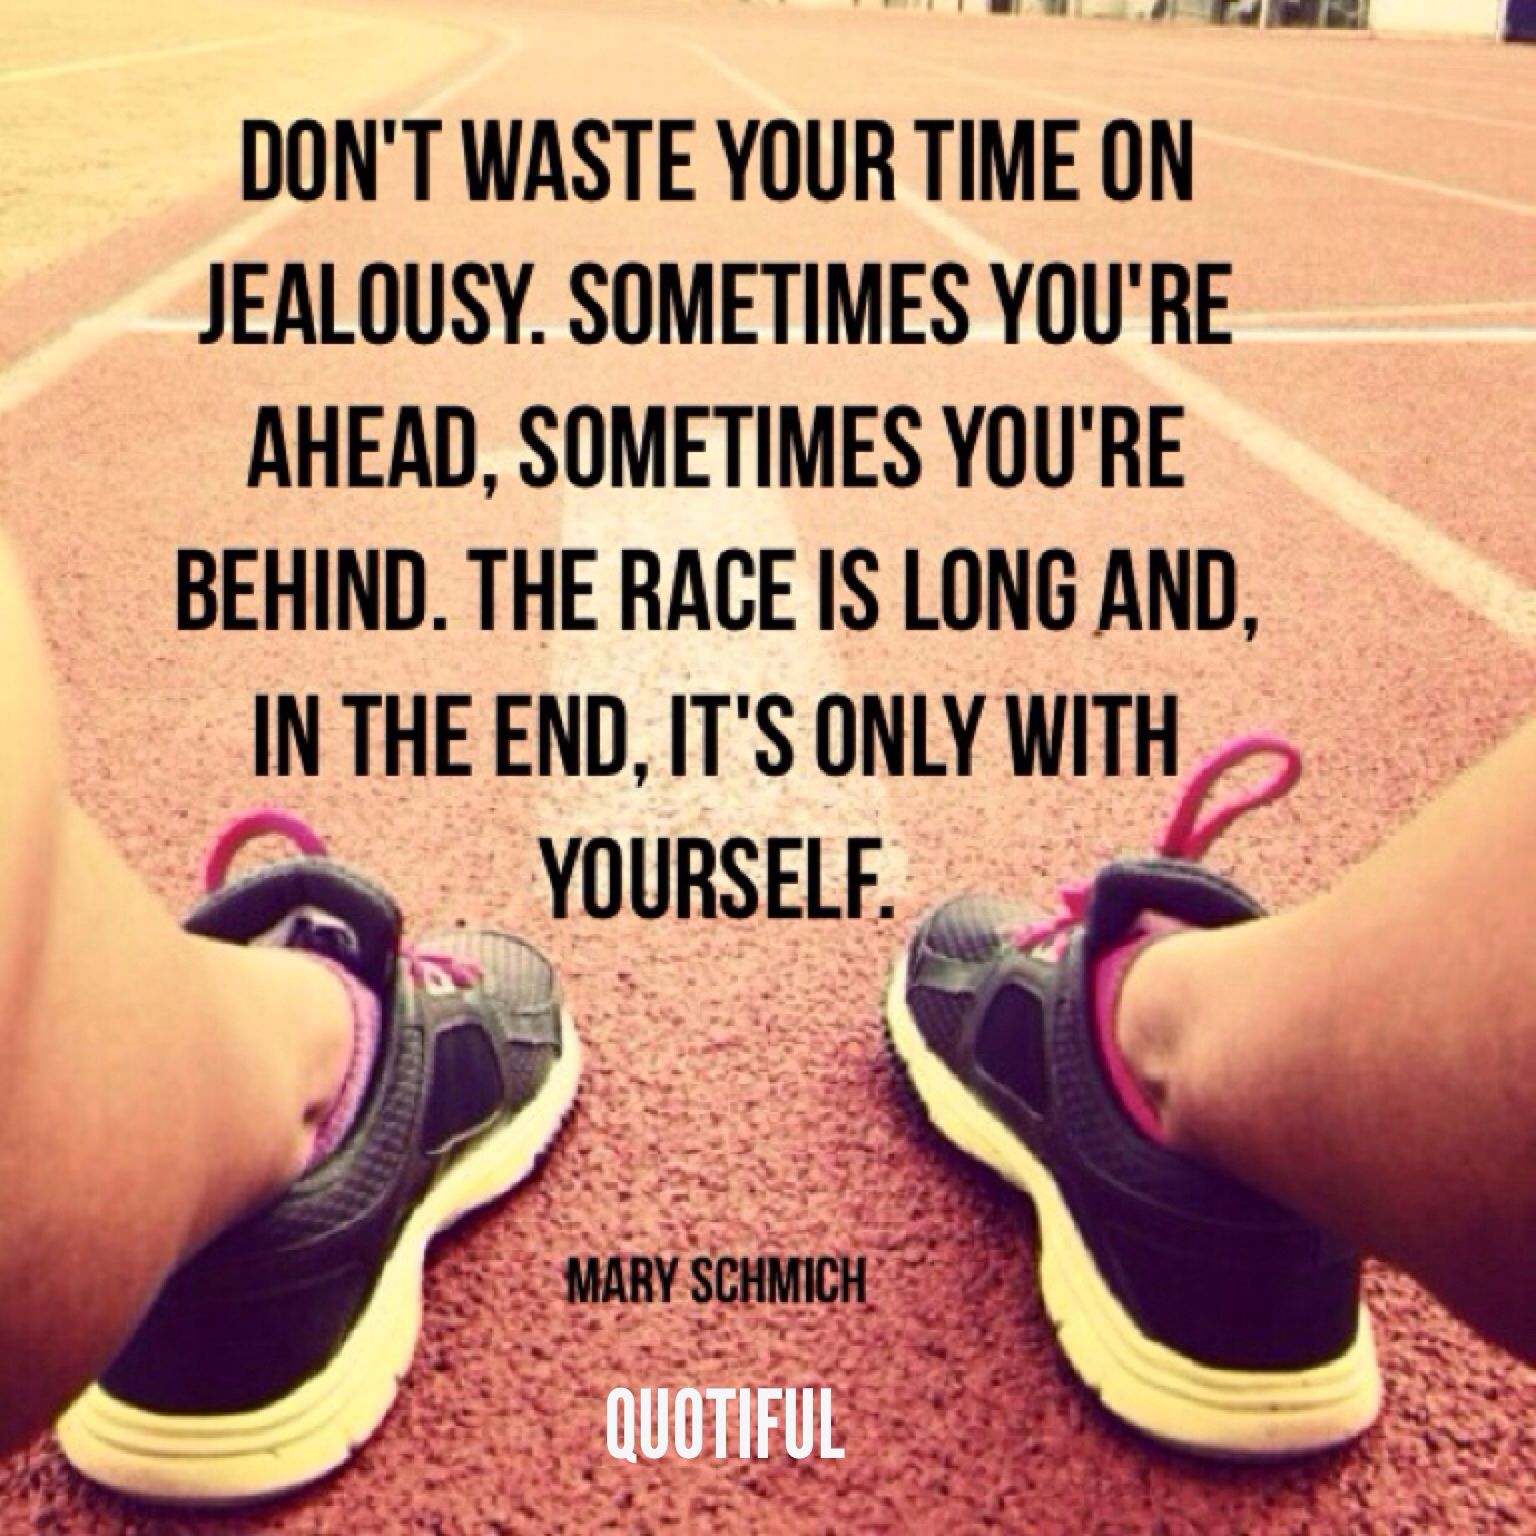 """Don't waste time on jealousy. Sometimes you're ahead, sometimes you're behind. The race is long and, in the end, it's only with yourself."" ~Mary Schmich [1536×1536]"